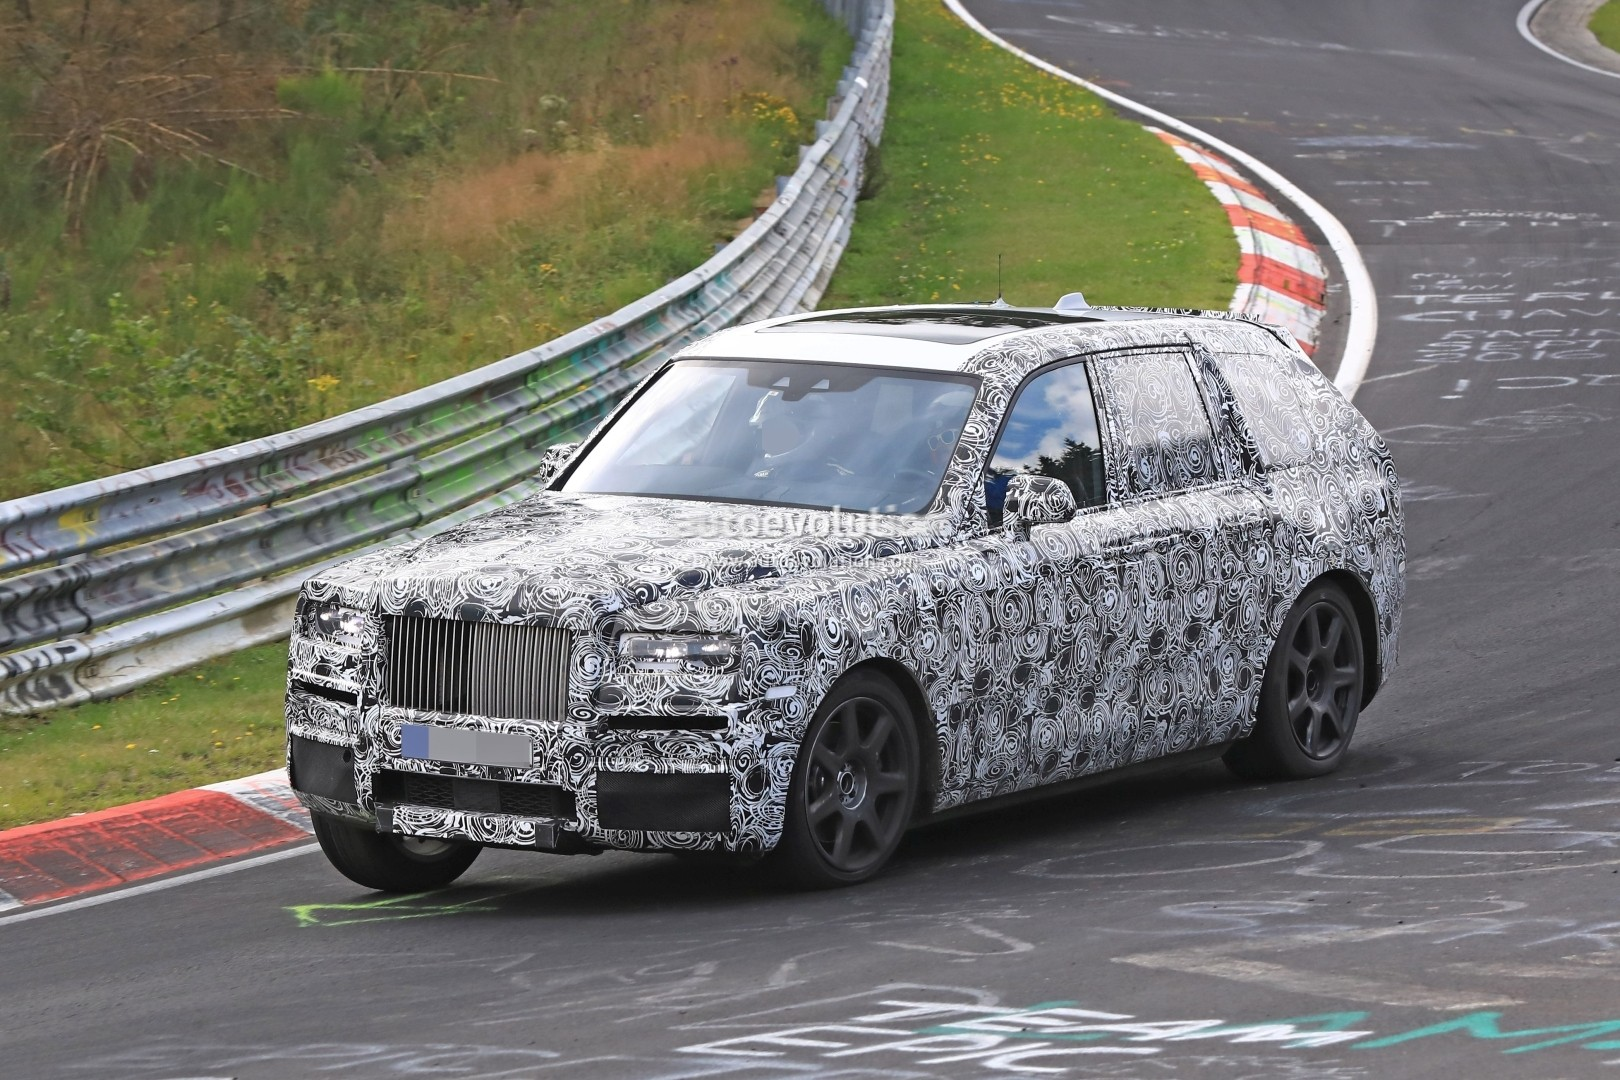 Rolls-Royce premieres Phantom VIII, all-new 'silent' V12 engine